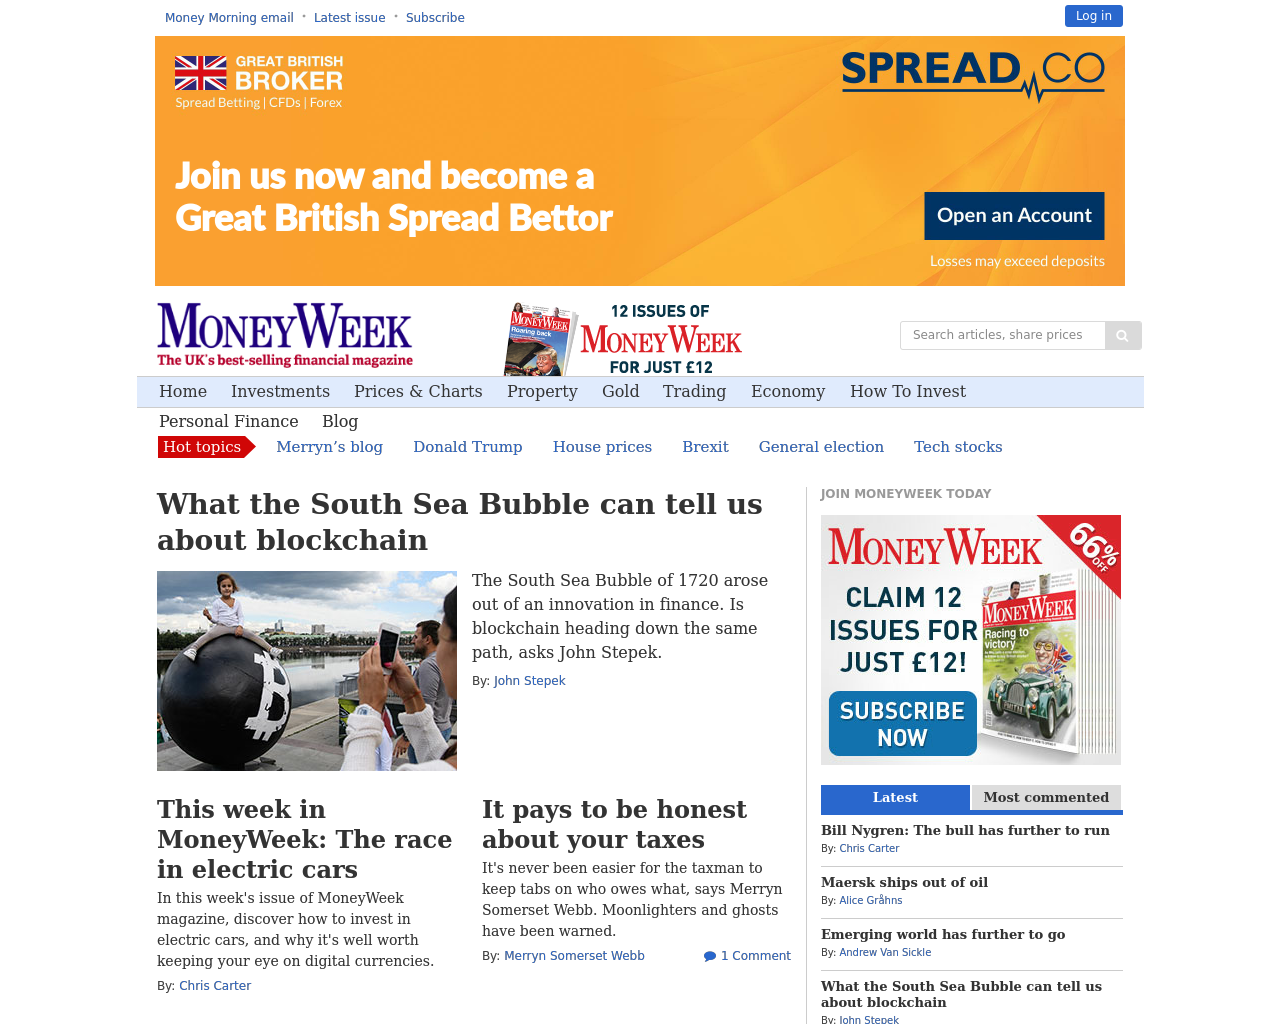 MONEYWEEK-Advertising-Reviews-Pricing